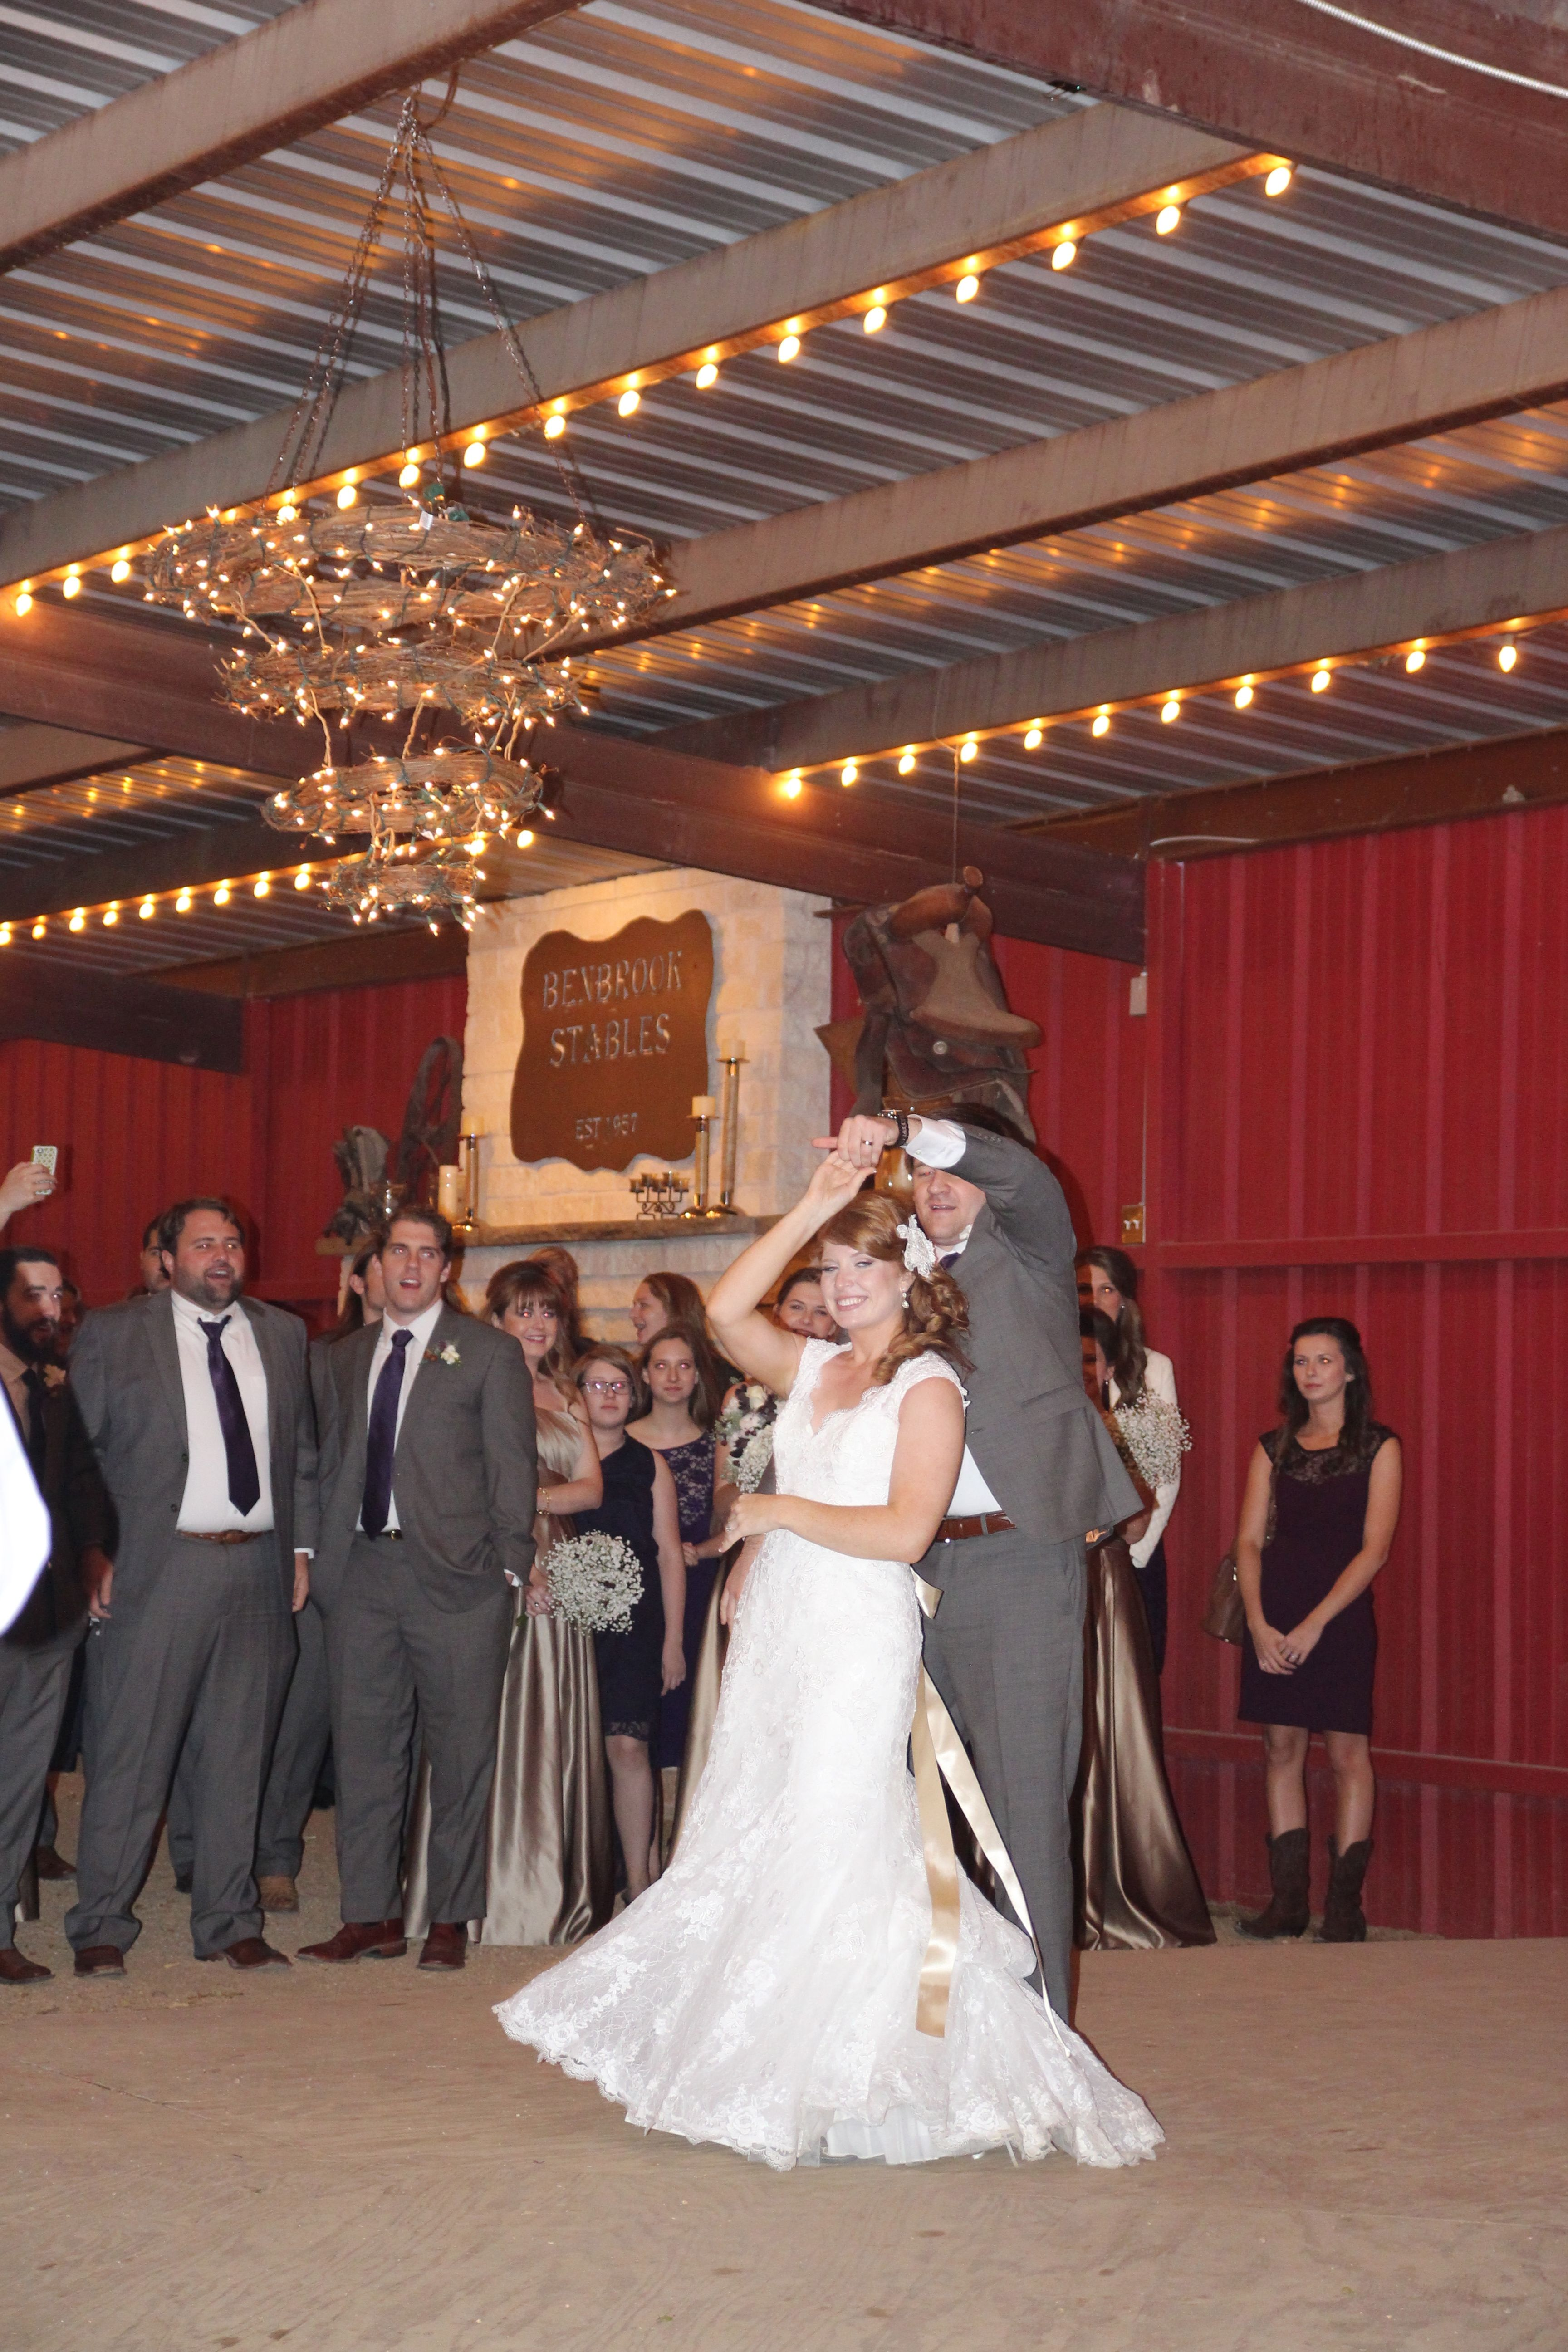 outdoor wedding venues in fort worth tx%0A Benbrook Stables is a full service equestrian center and event venue just  minutes from downtown Fort Worth  Texas  Situated on     acres next to Lake